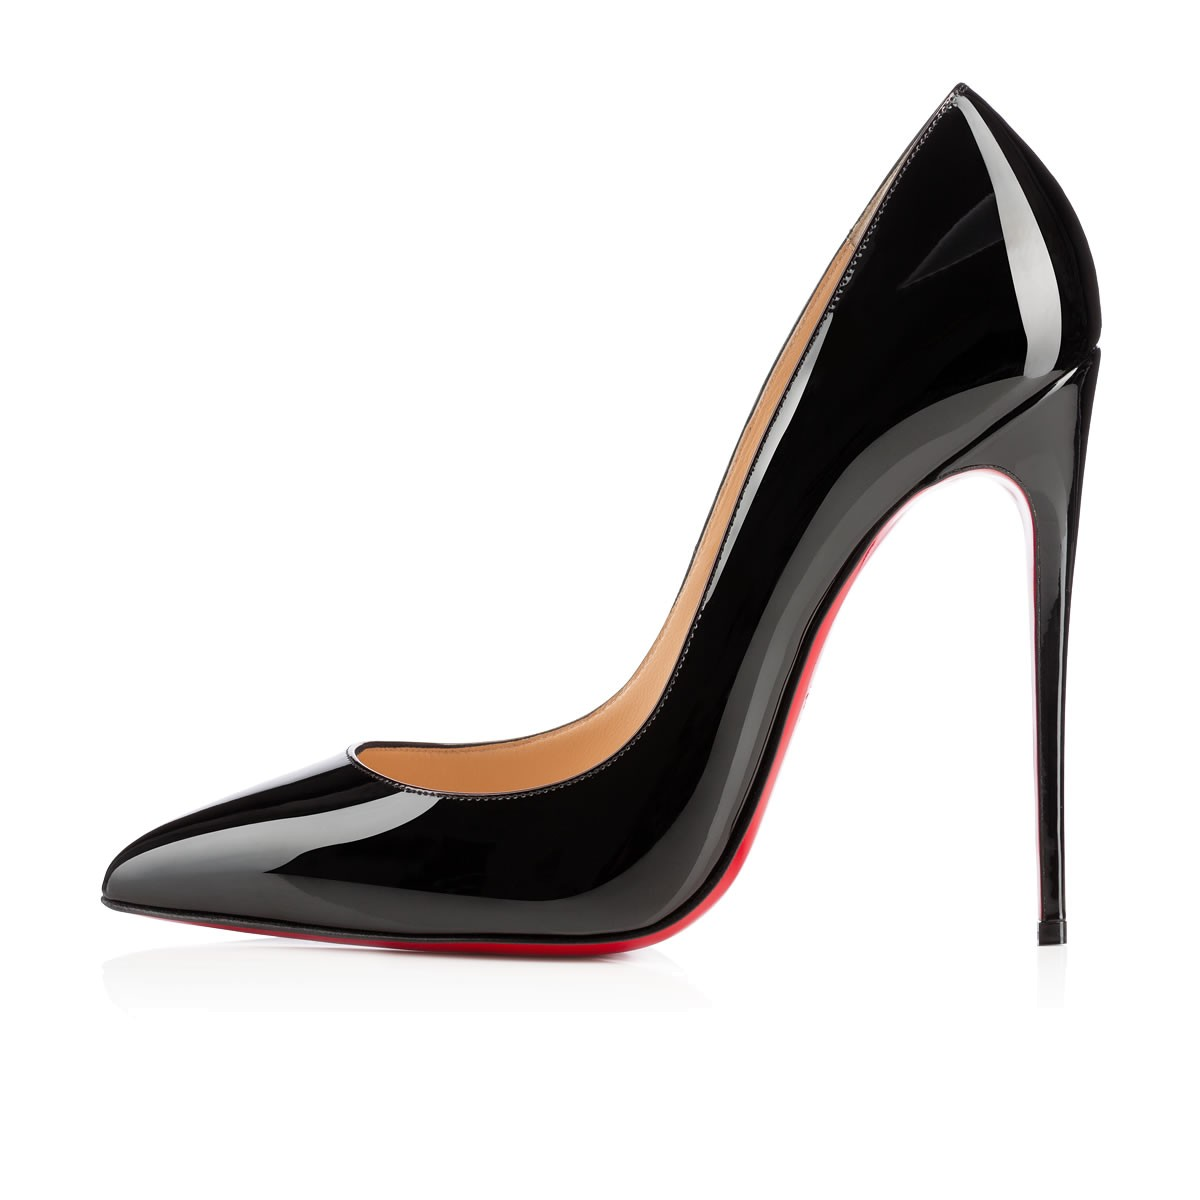 Signature Red Sole Shoes